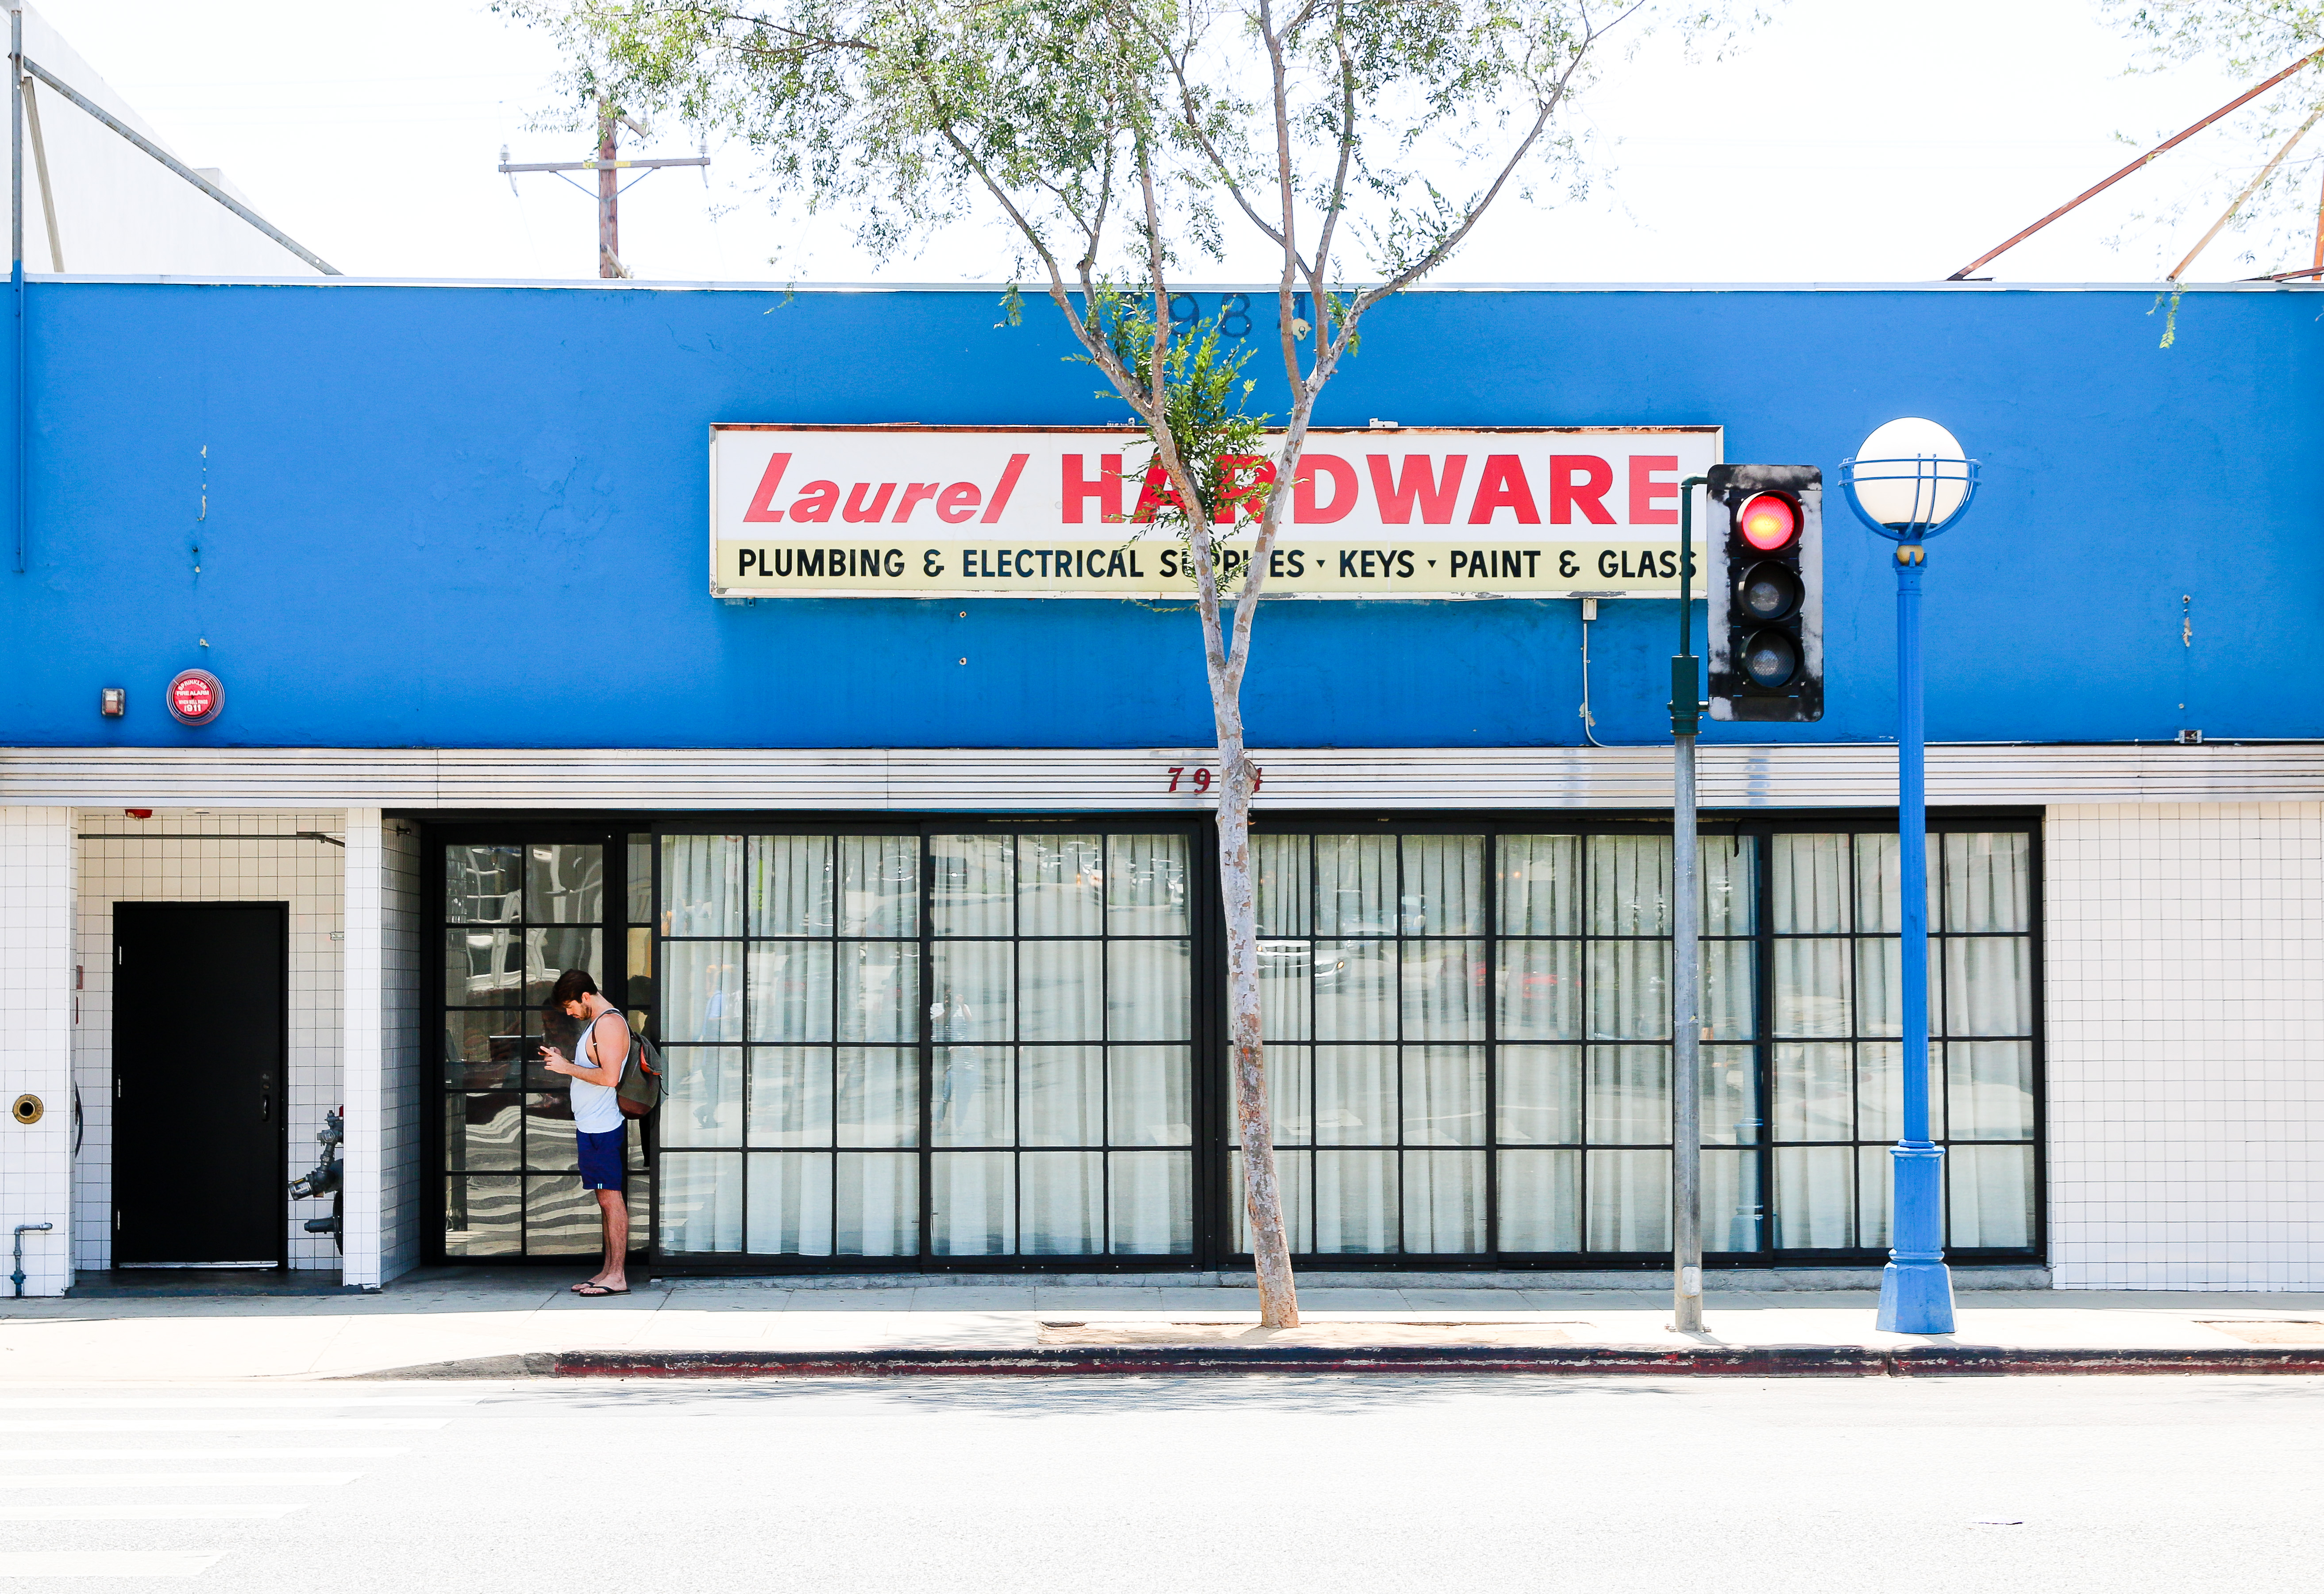 Laurel Hardware - West Hollywood - Los Angeles - The Infatuation